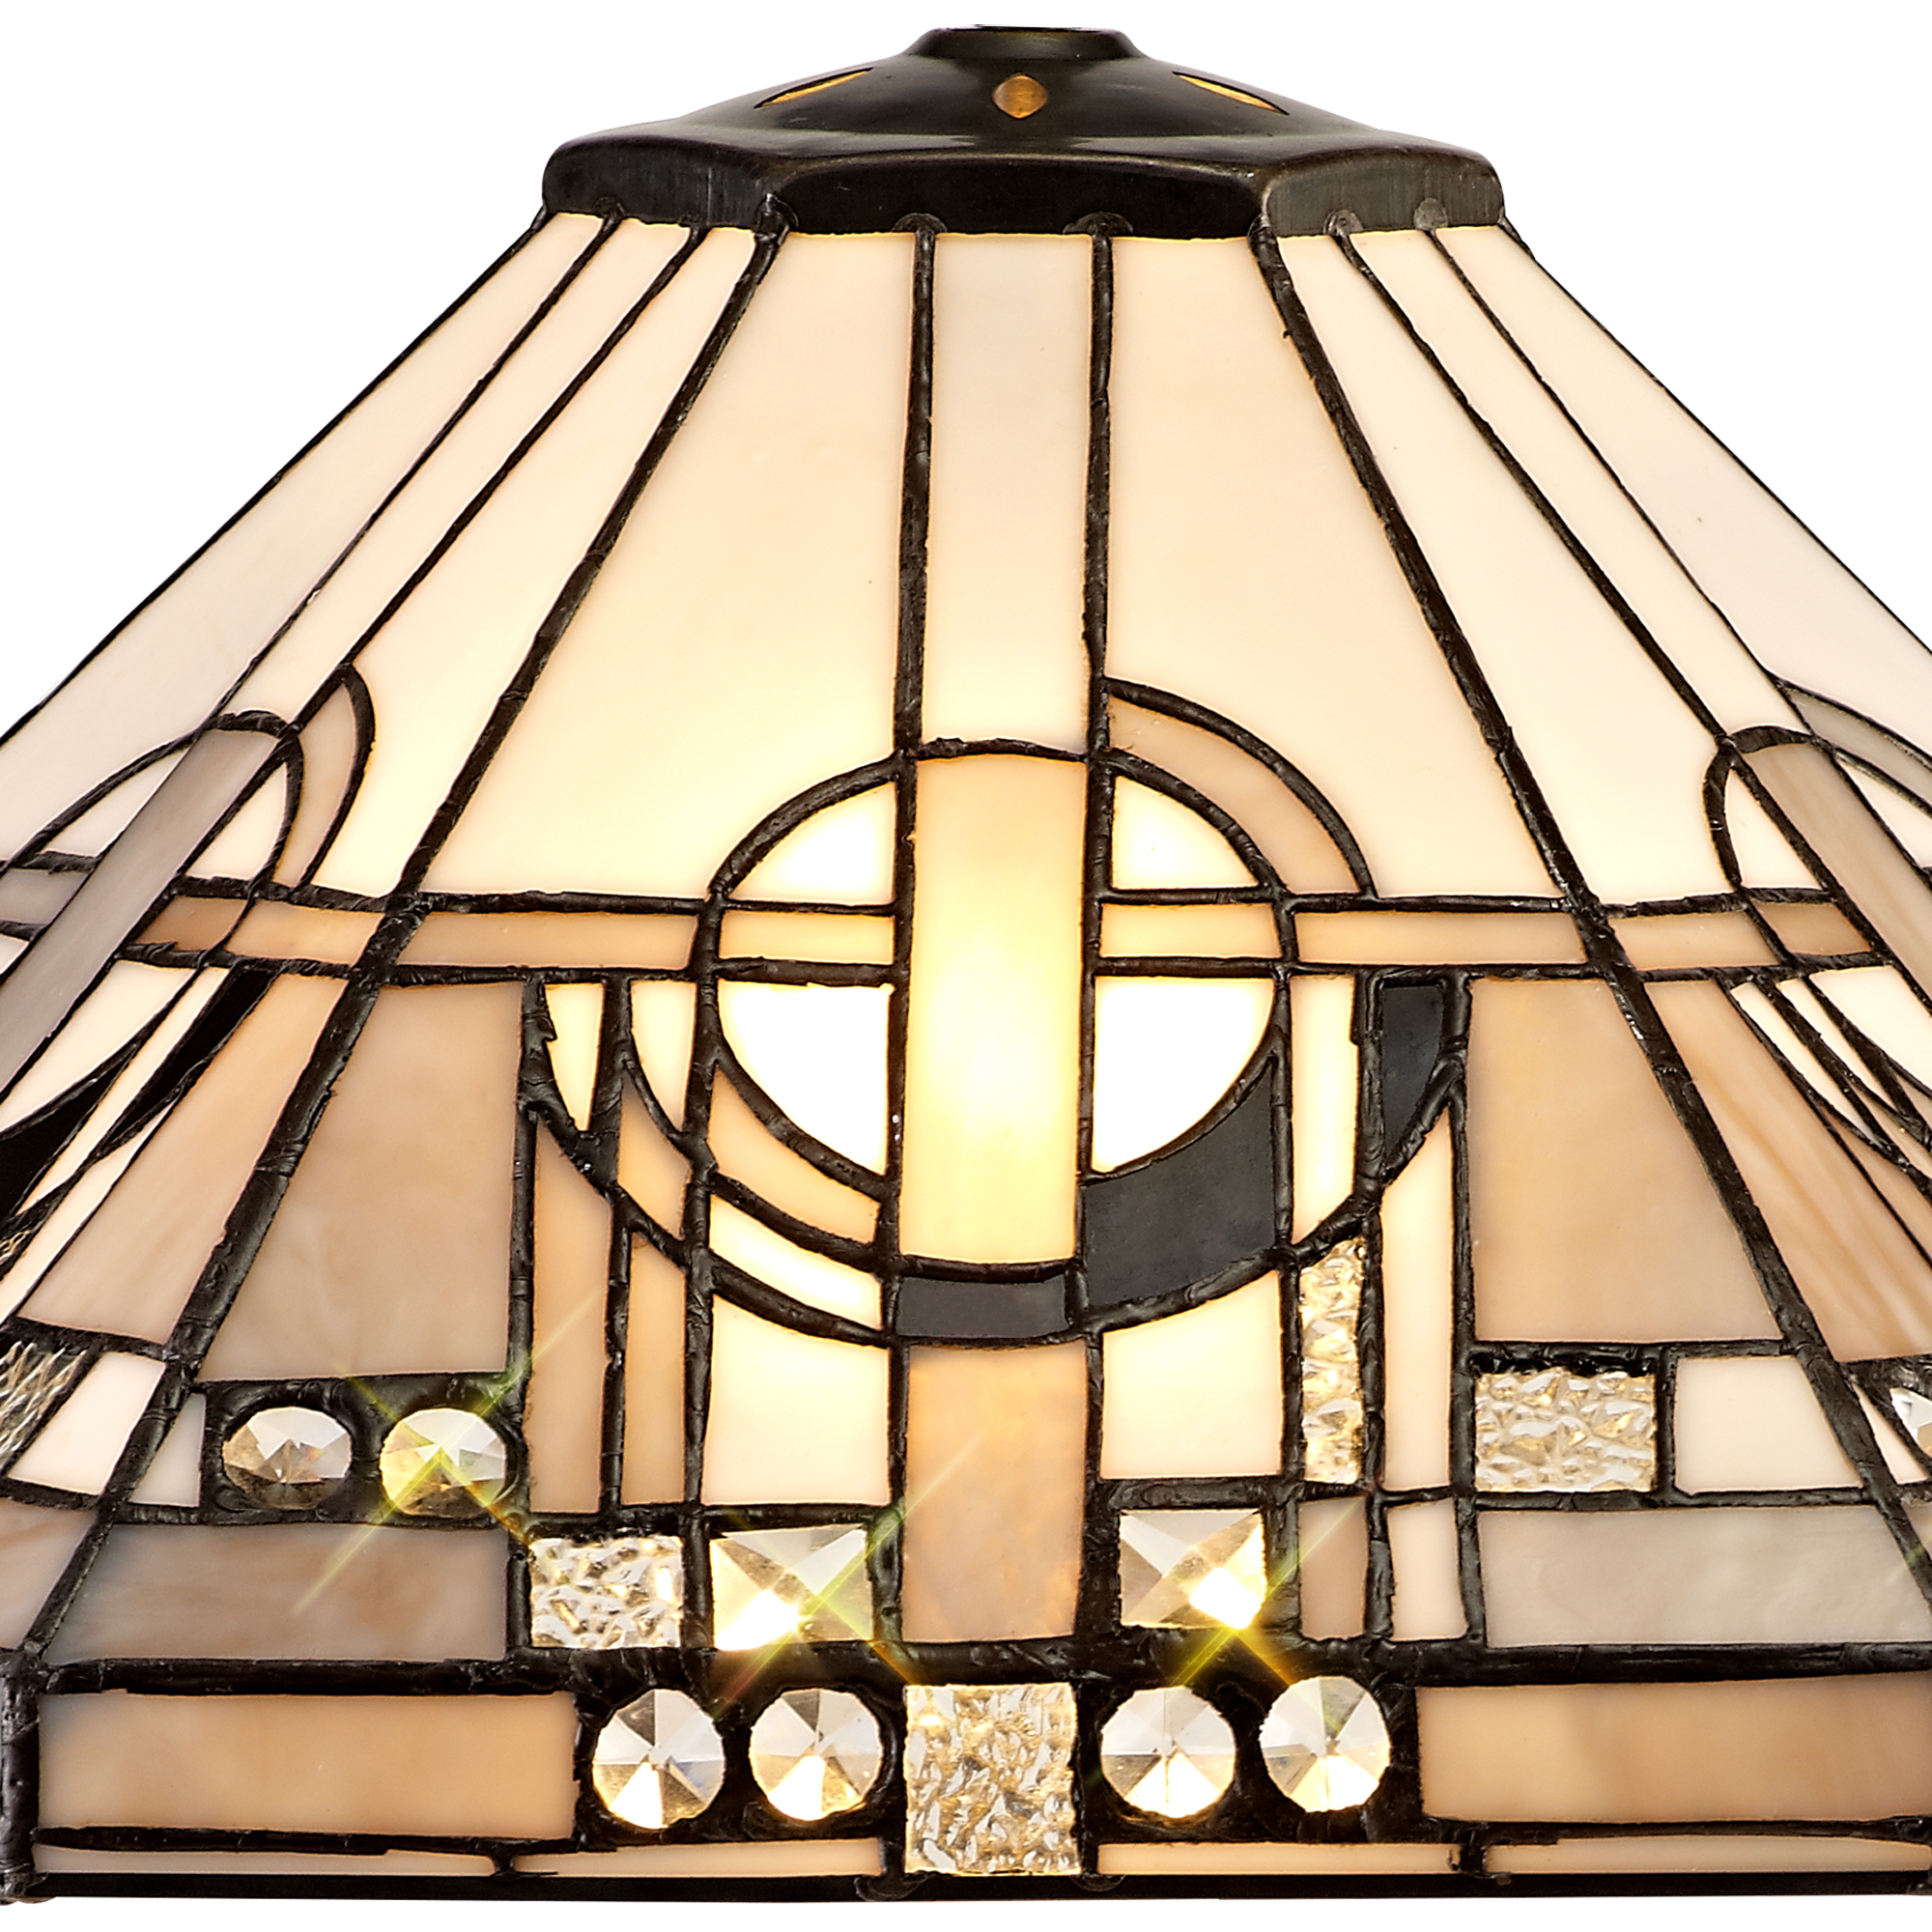 2 Light Octagonal Table Lamp E27 With 40cm Tiffany Shade, White/Grey/Black/Clear Crystal/Aged Antique Brass